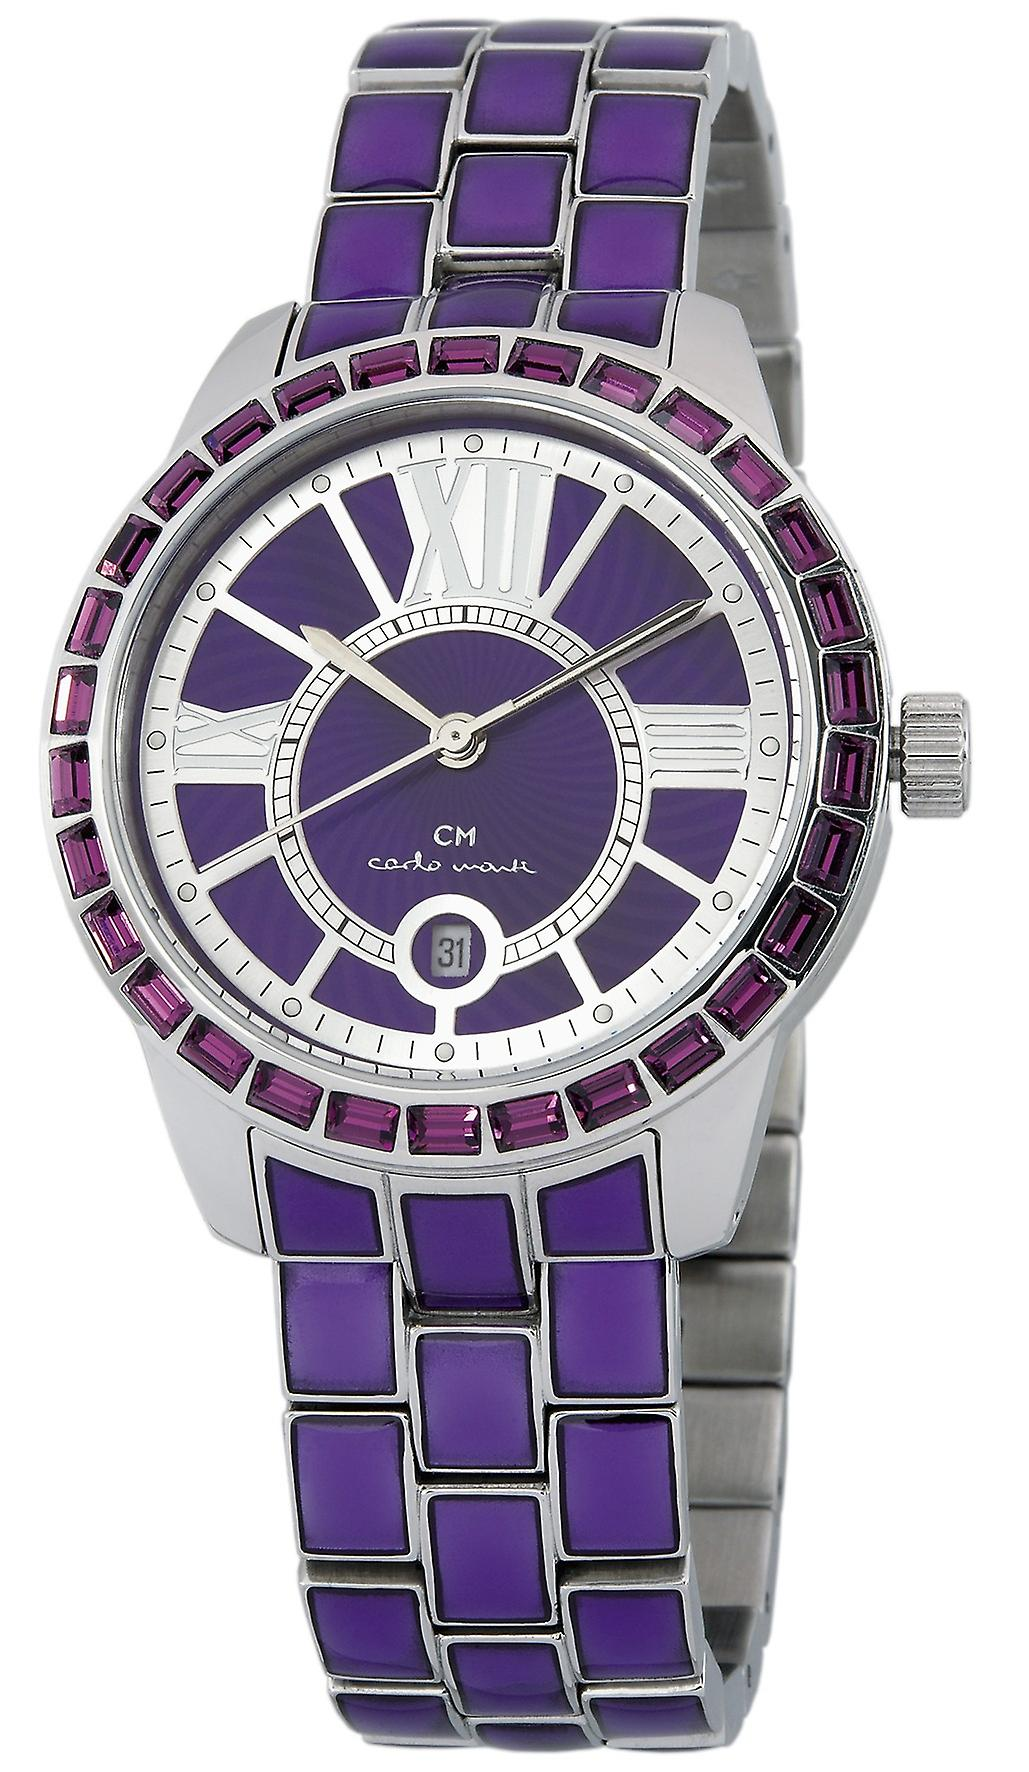 Carlo Monti Ladies quartz watch CMZ01-190